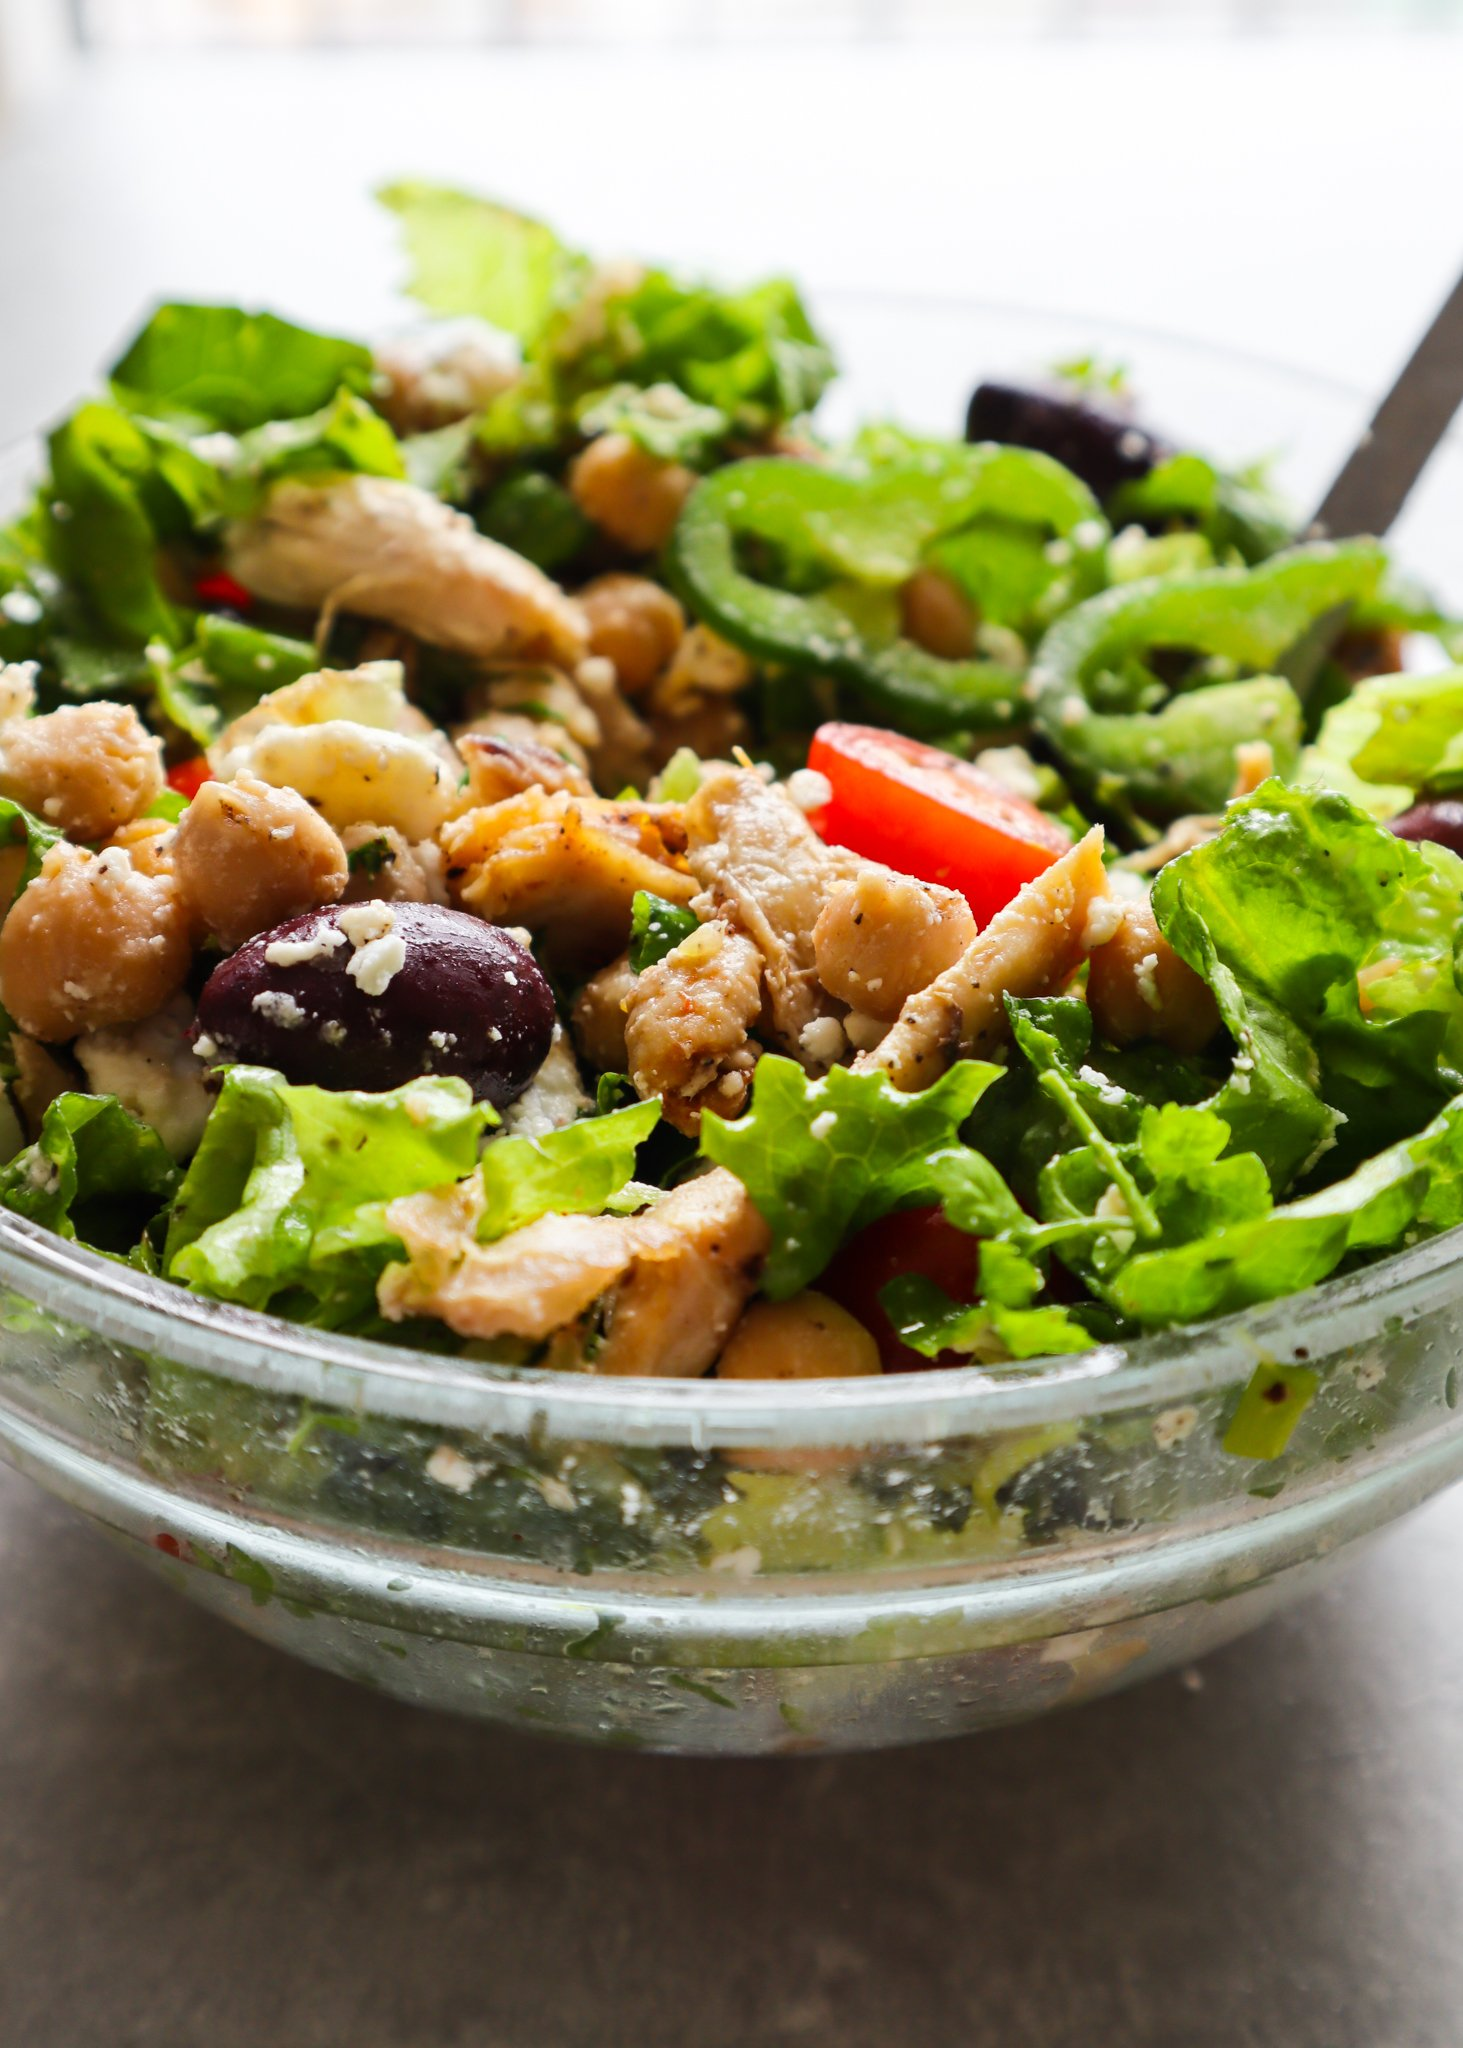 This fresh and healthy Mediterranean chickpea and chicken salad recipe is packed with vegetables, protein and flavor! Perfect filling and nutritious healthy lunch recipe!